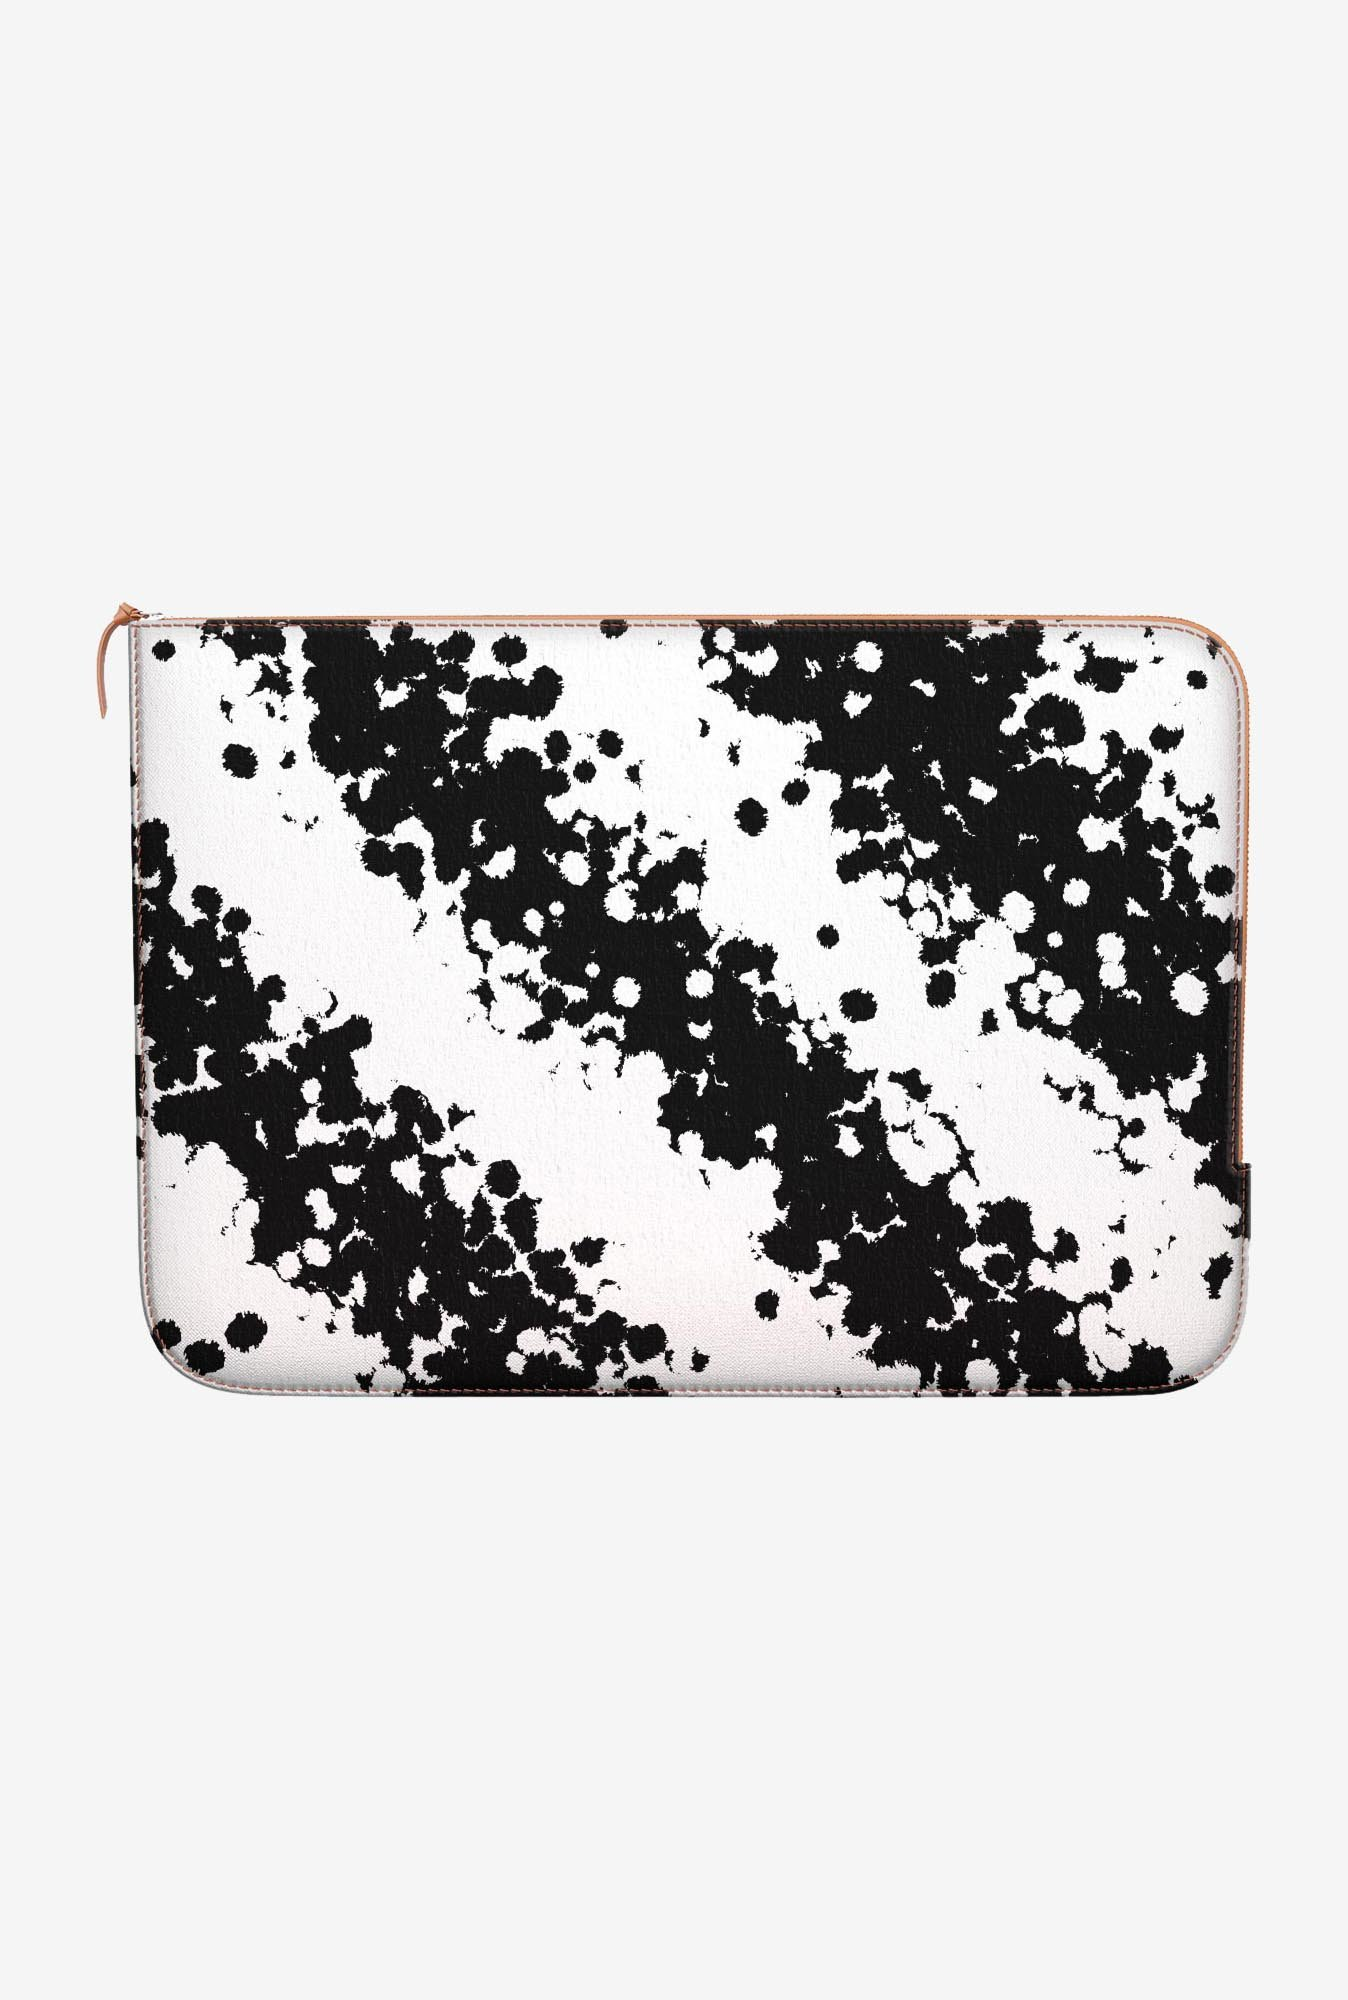 DailyObjects Polka Stripes MacBook Pro 15 Zippered Sleeve